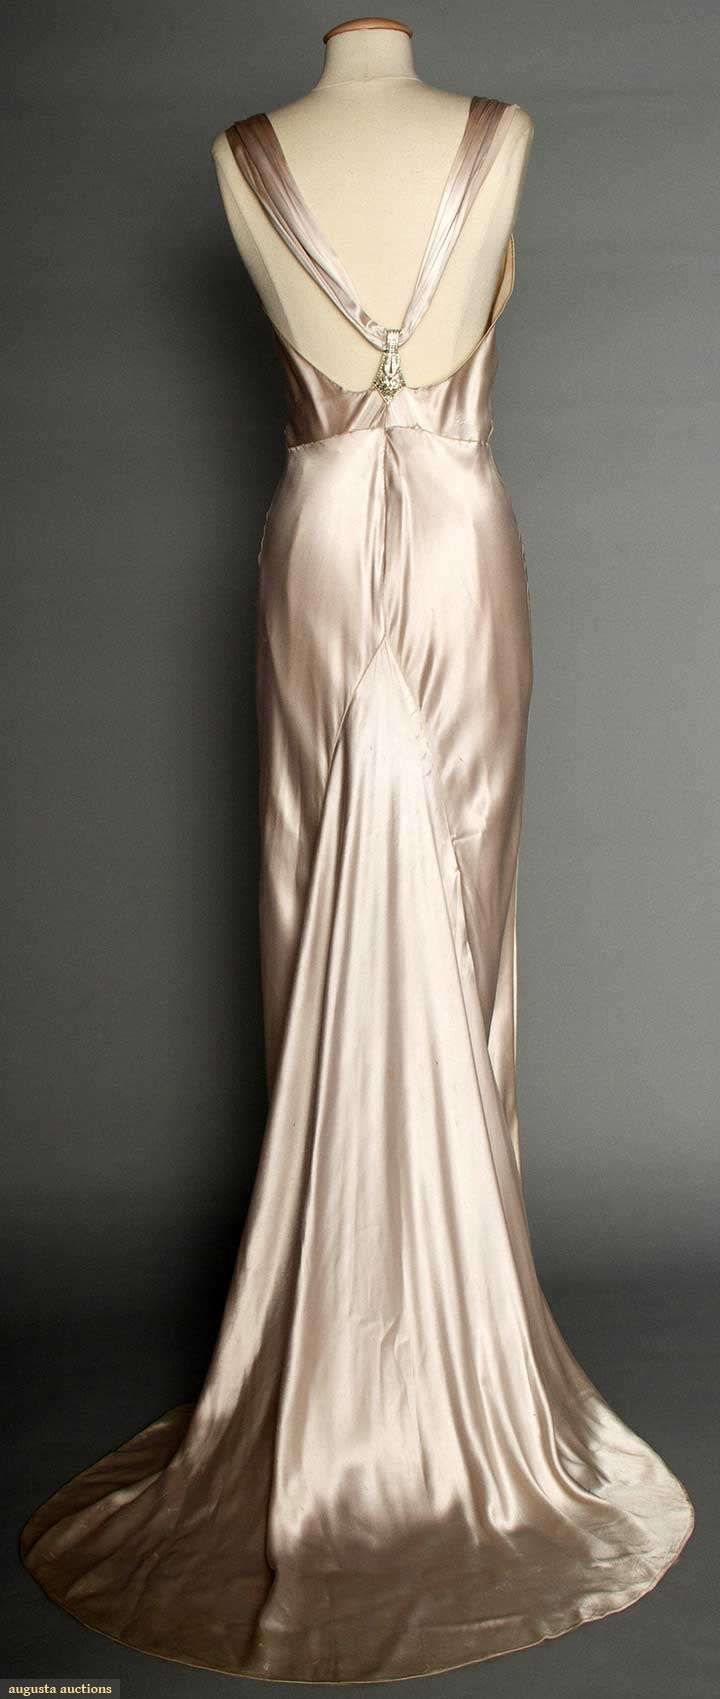 best fashion images on pinterest bridal gowns dream dress and